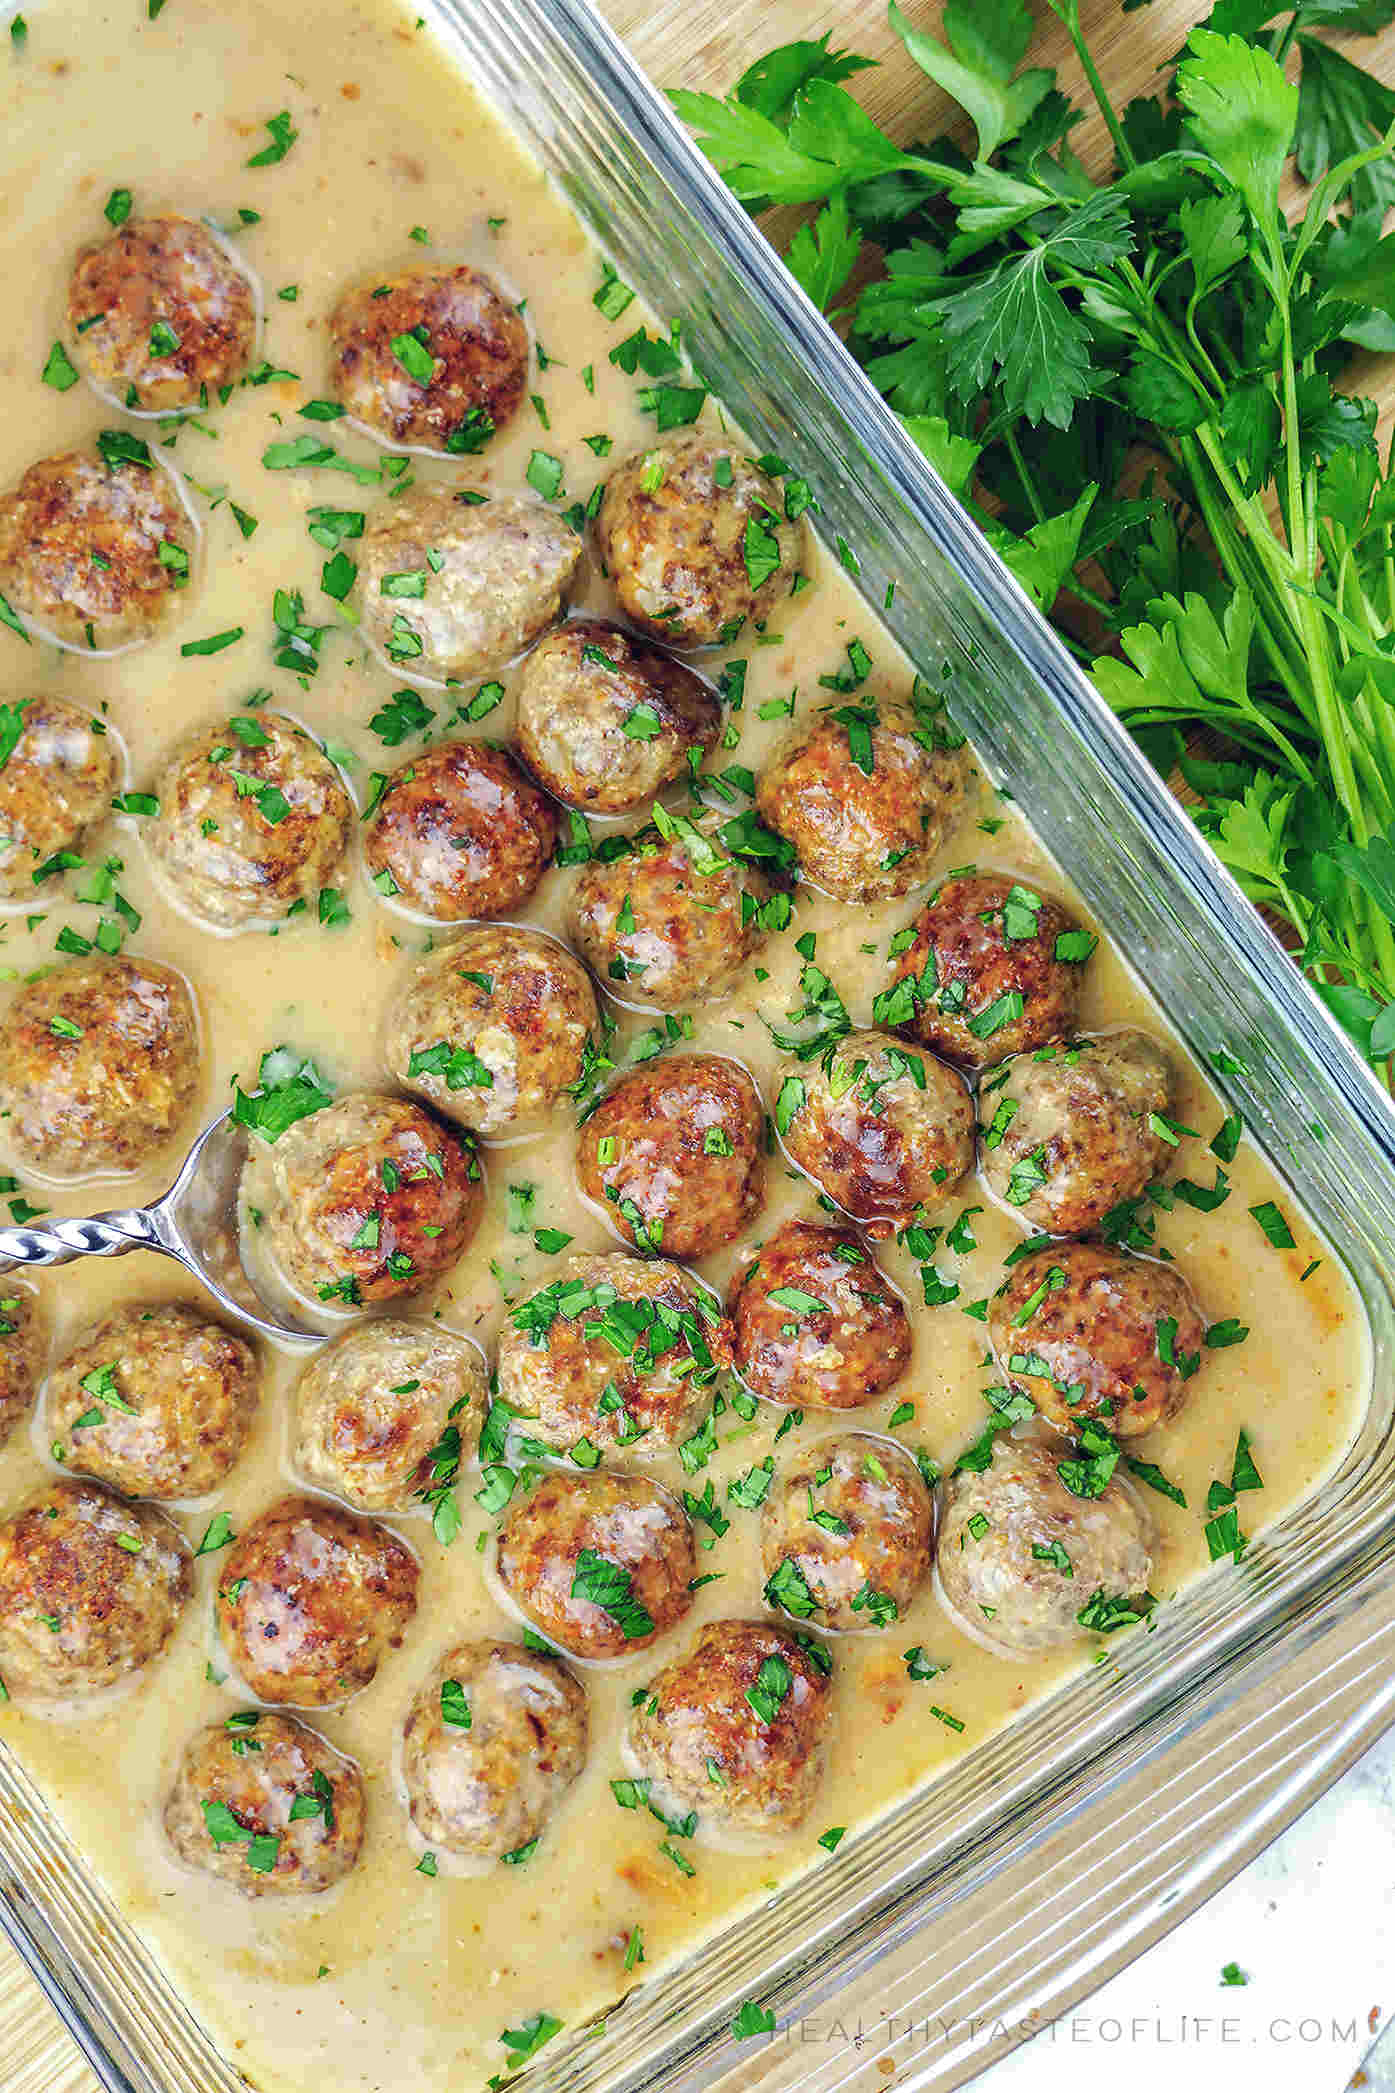 Easy gluten free Swedish meatballs with dairy free sauce (+ whole30, paleo and keto options), oven baked.